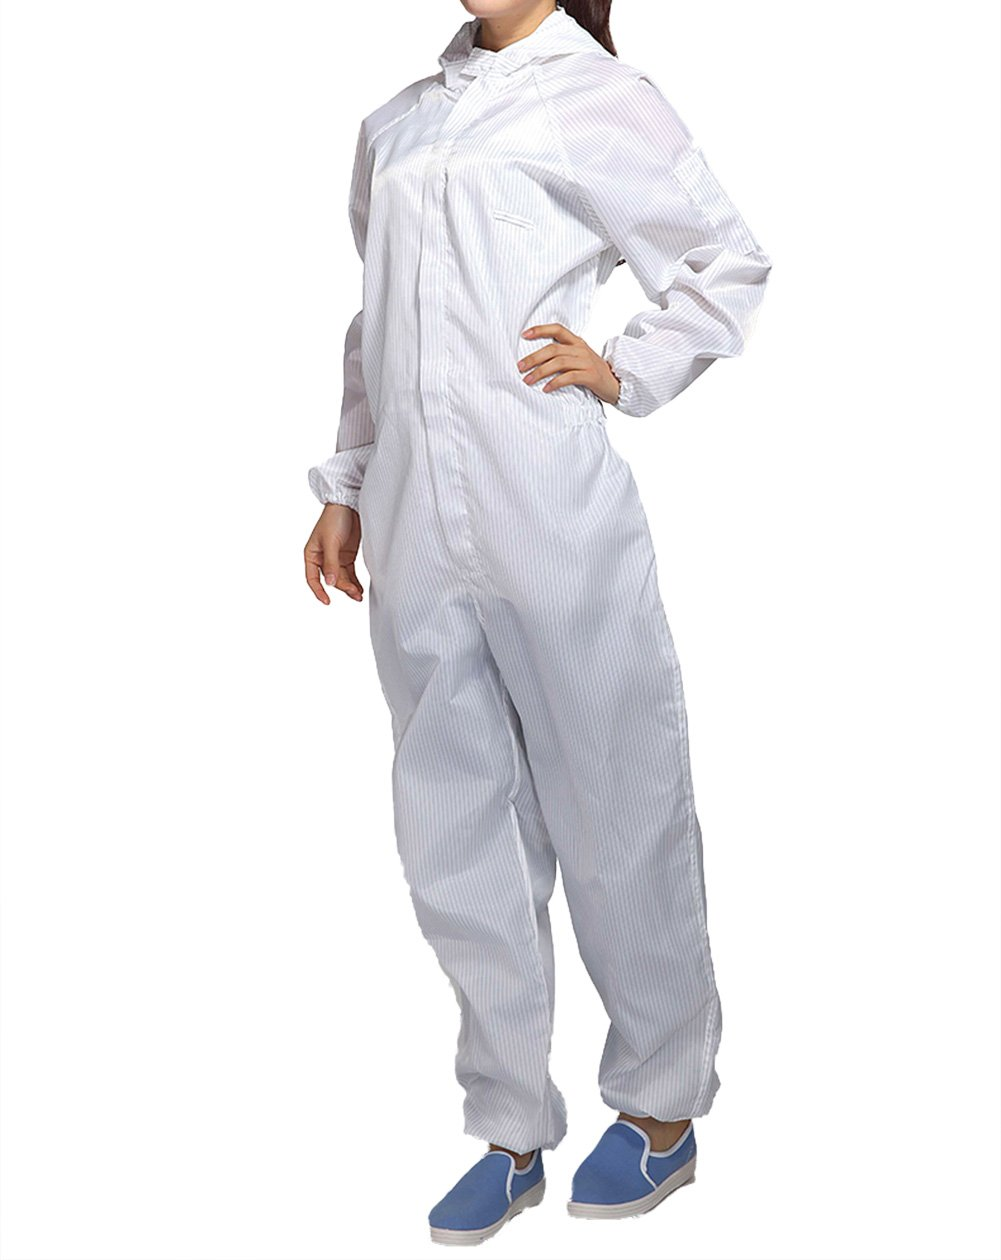 ESD Lab Zip Up Hooded Anti Static Jumpsuit Coverall Uniform Spray Paint Work Clothes (Size XL, White)